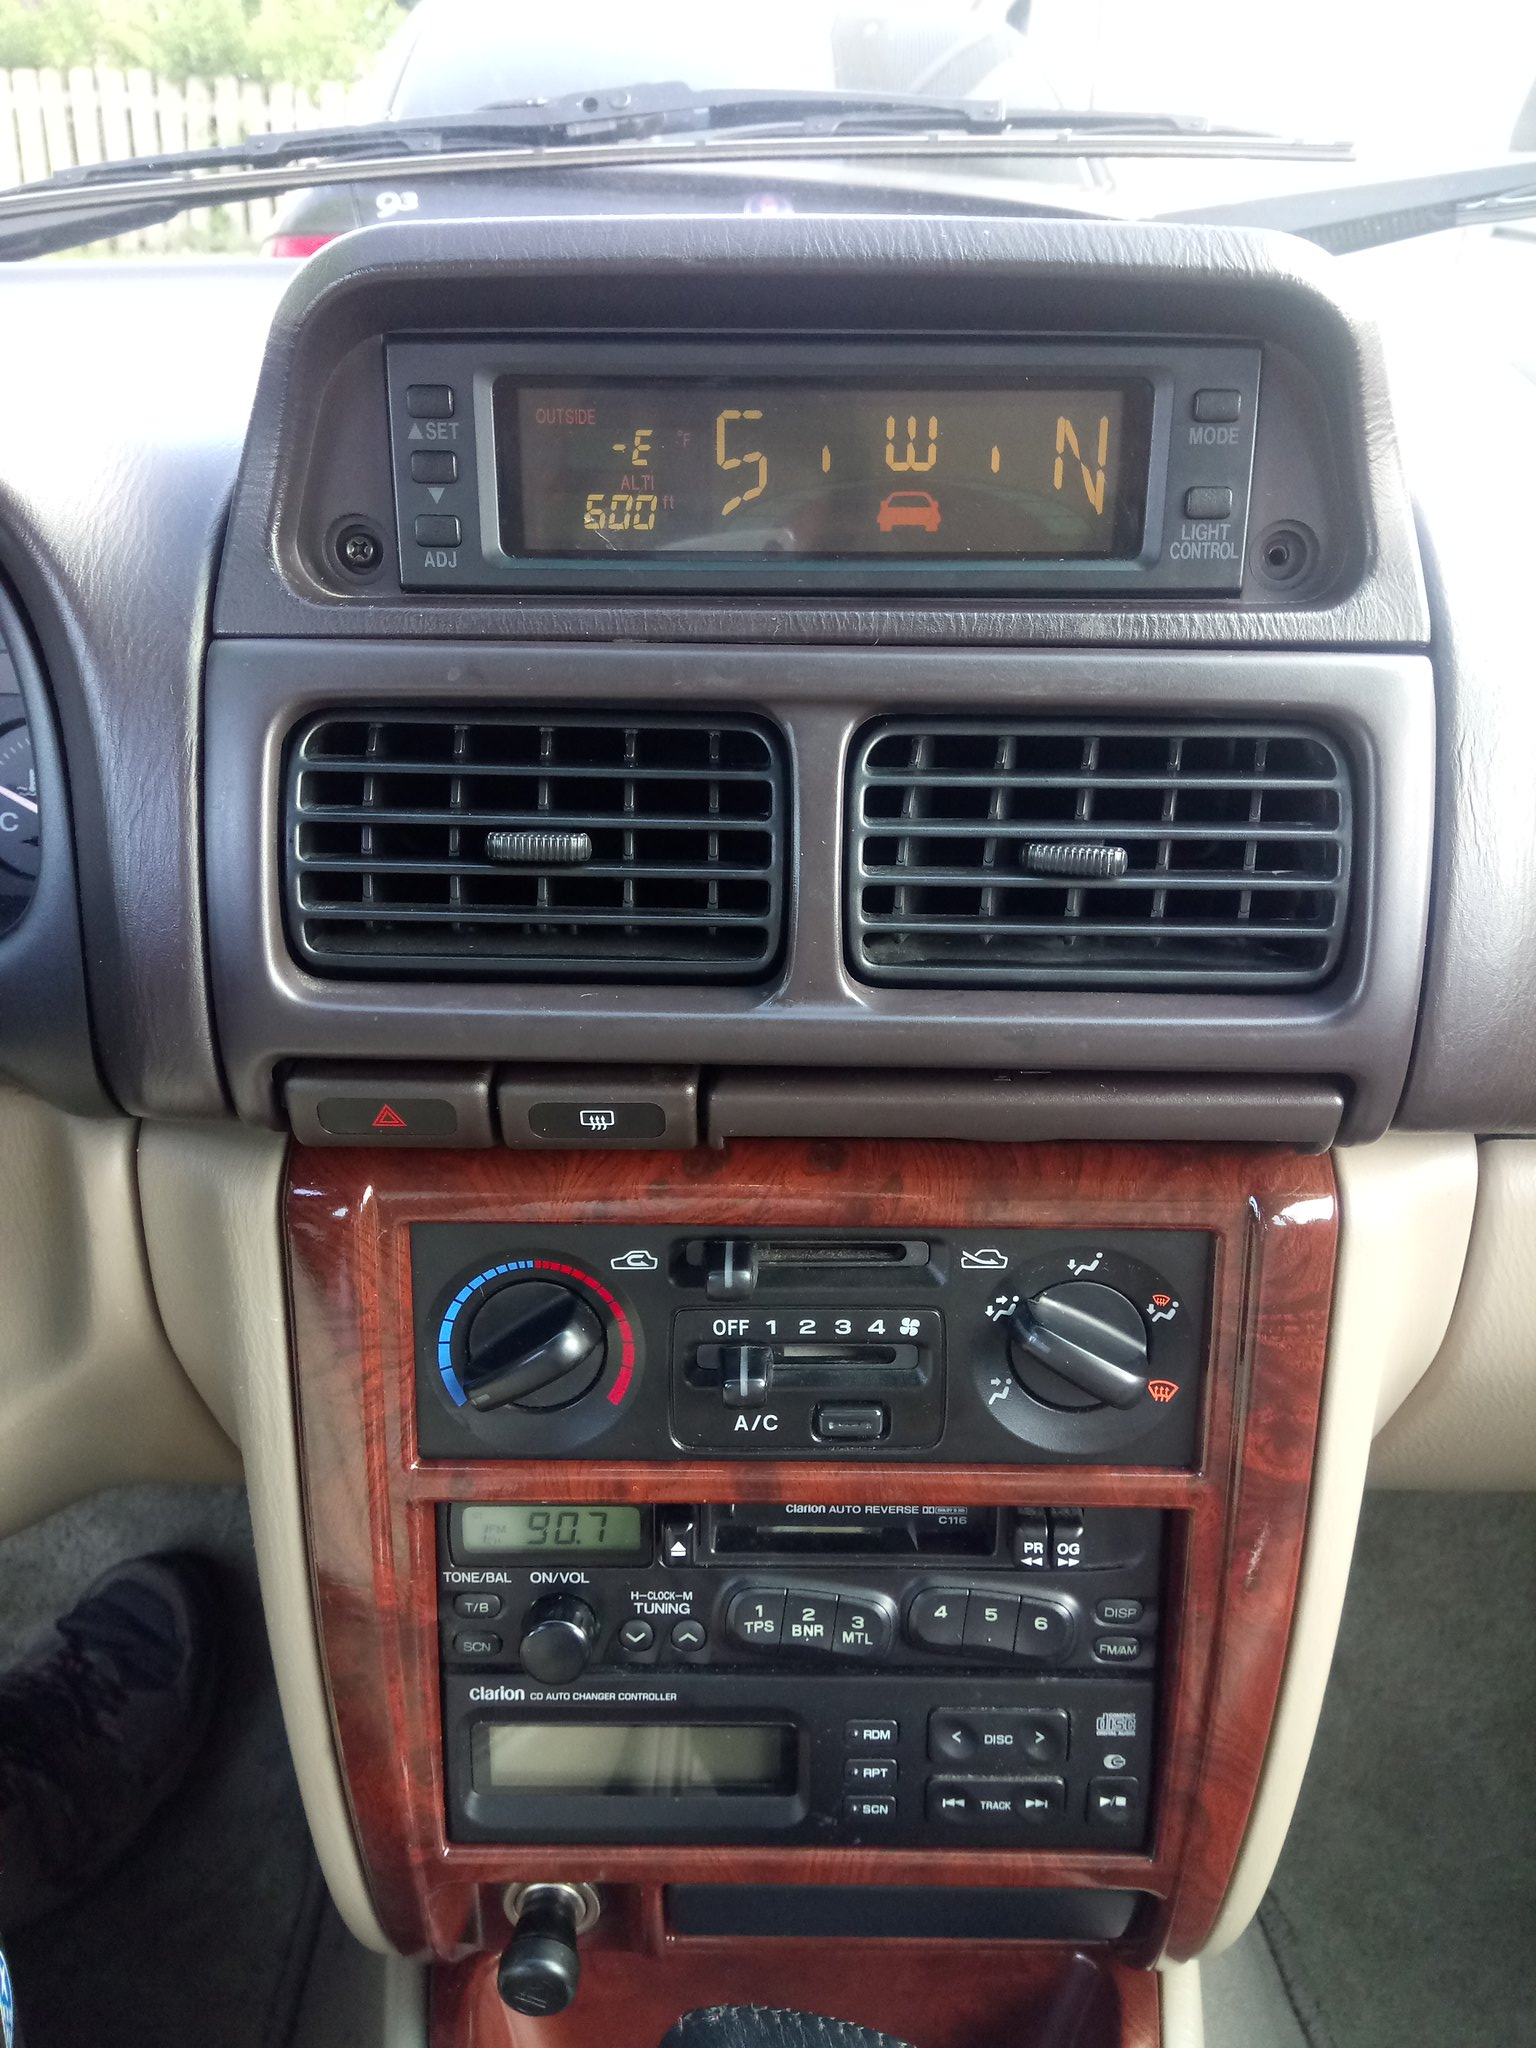 Wiring Diagram In Addition 2002 Chevrolet Tracker On Vw Light Switch